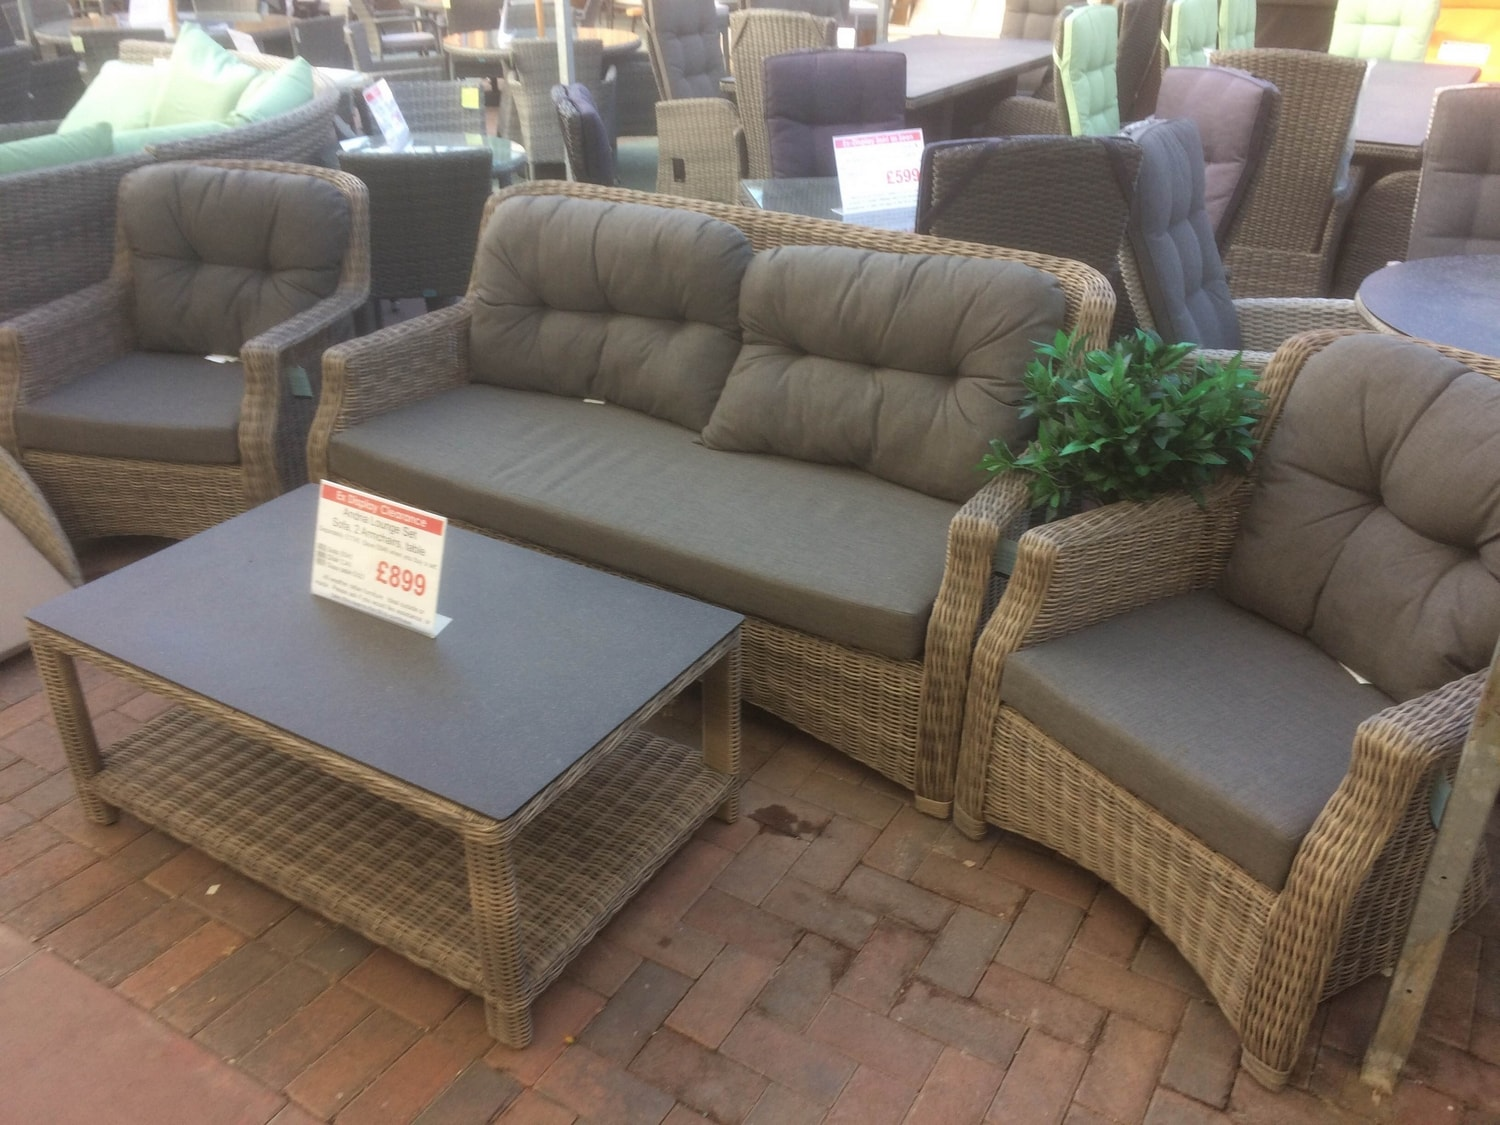 garden furniture sapcote garden centre 0010 garden furniture from sapcote garden centre in leicester - Garden Furniture 2015 Uk